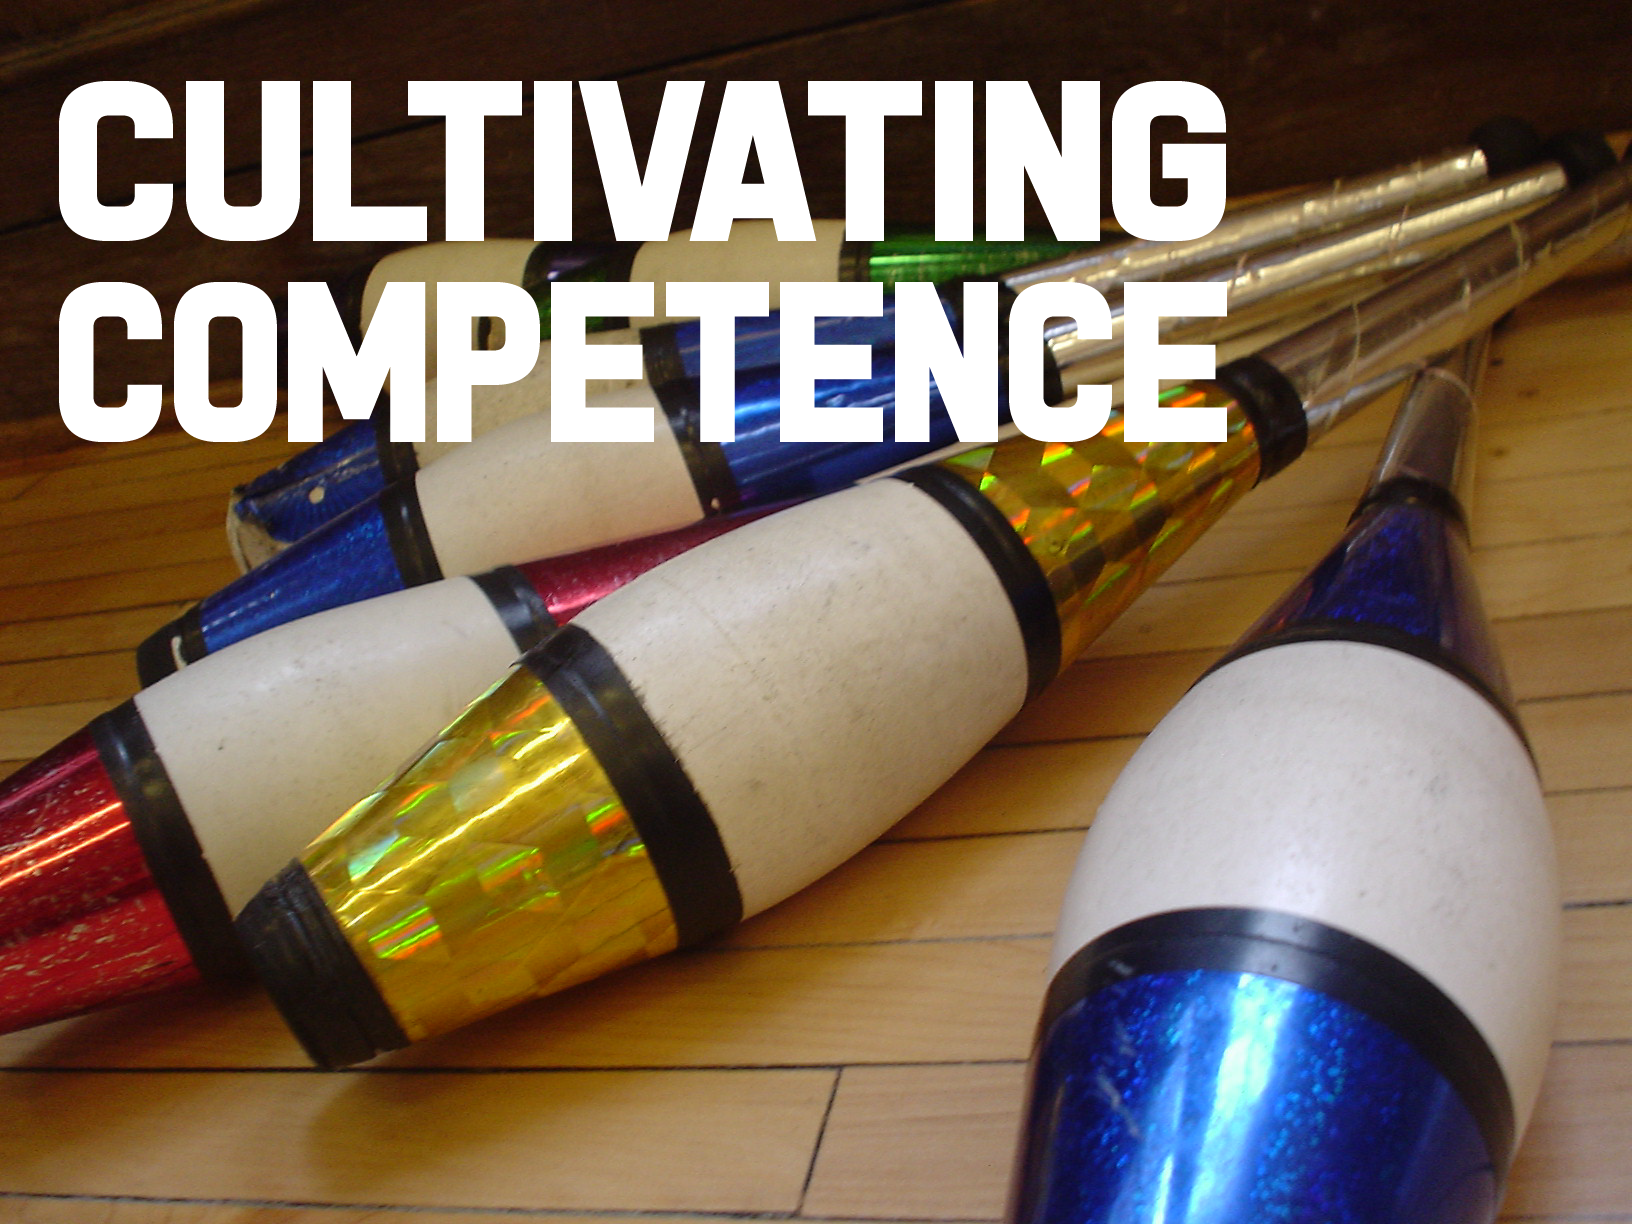 Cultivating Competence